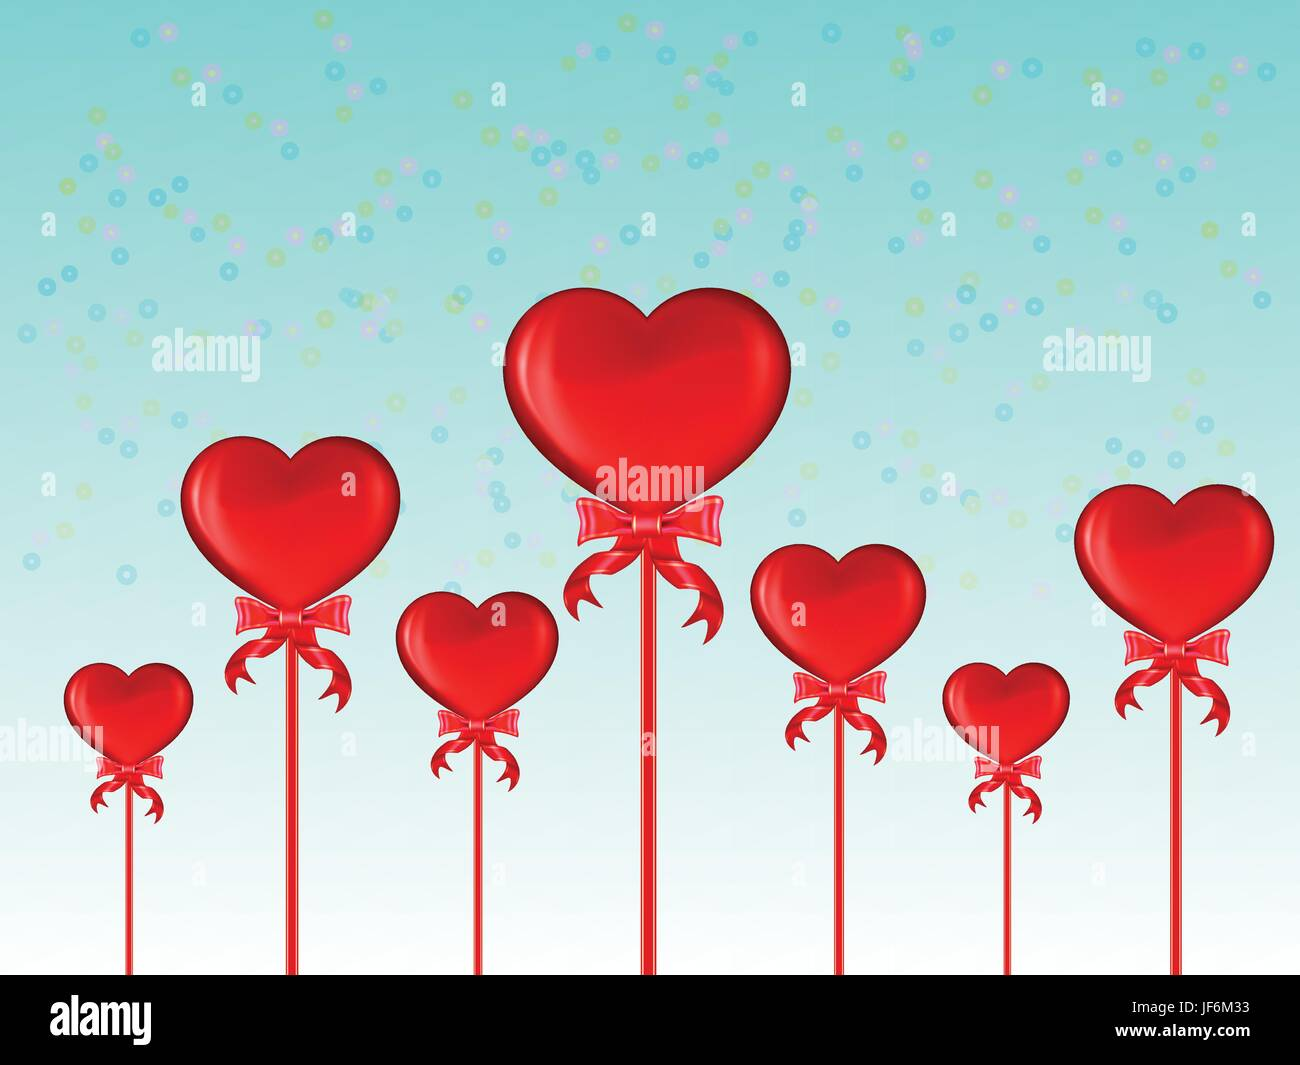 model, design, project, concept, plan, draft, card, love, in love, fell in - Stock Image